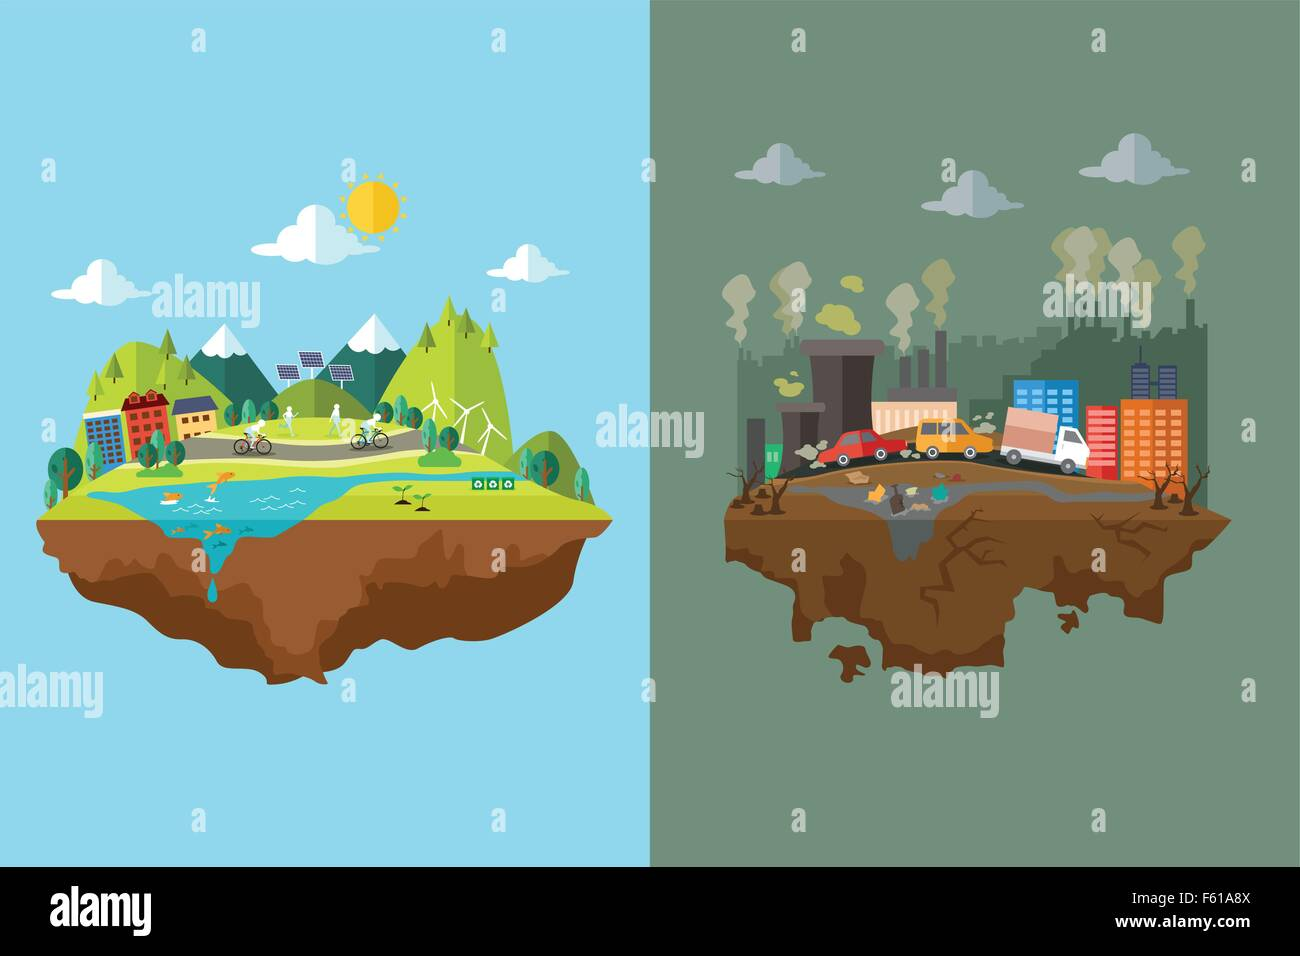 A vector illustration of comparison of clean city and polluted city - Stock Vector